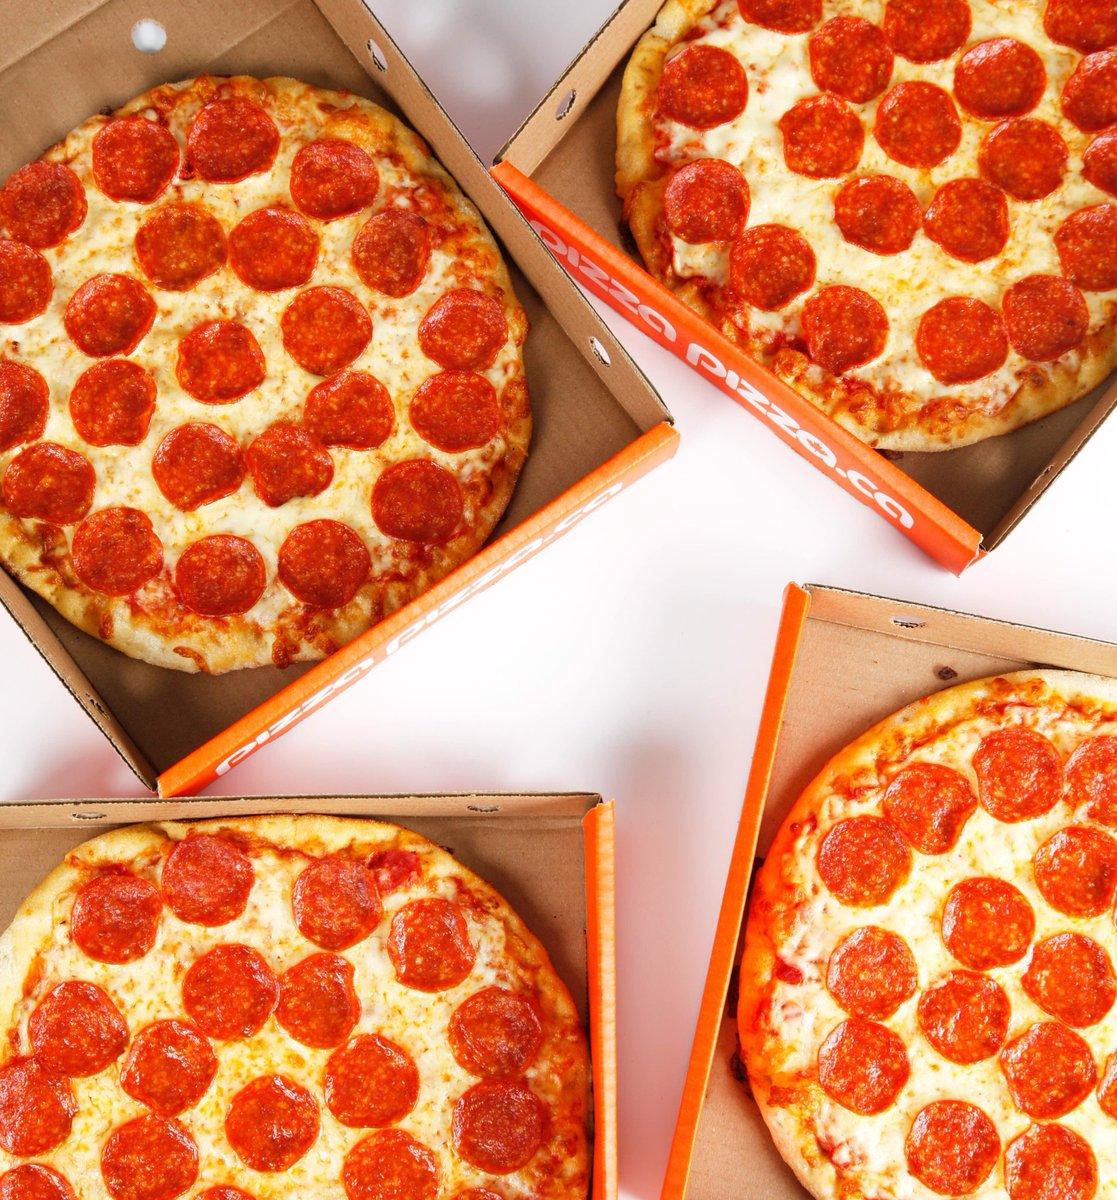 $3.14 PIZZAS HAVE BEGUN! RT & Follow for a chance to win a $50 Gift card!   . . . Walk in only. Limit 1 per customer. Ends 3:14pm March 14th.